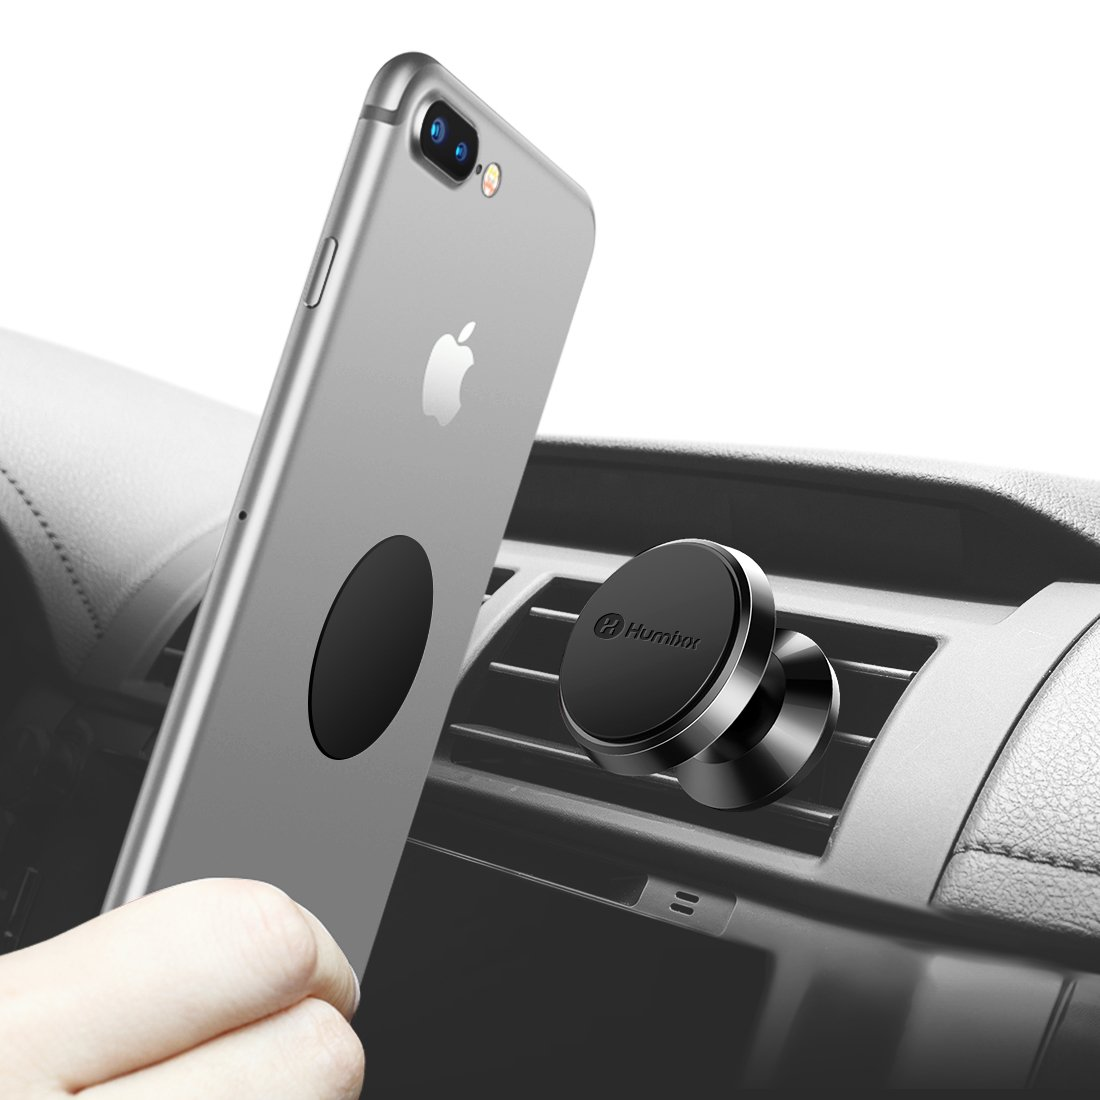 Humixx Magnetic Phone Holder for Car, 360° Adjustable Air Vent Cellphone Car Mount Holder for iPhone 8 8 Plus 7 7 Plus,Samsung S7 S8, HTC, LG, ZTE [Easy Clamping Series] (Black) by Humixx (Image #8)